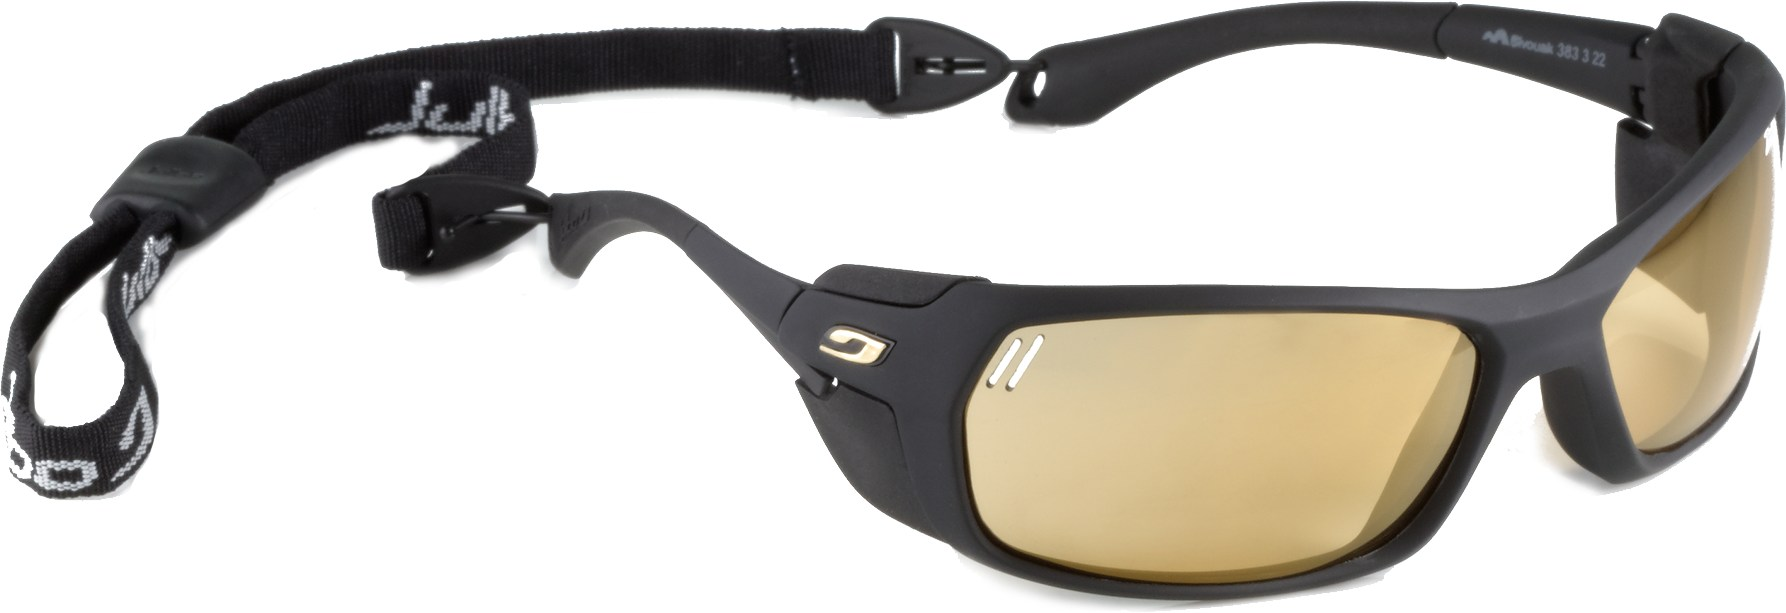 Climbing Julbo Bivouak Photochromic Glacier Sunglasses